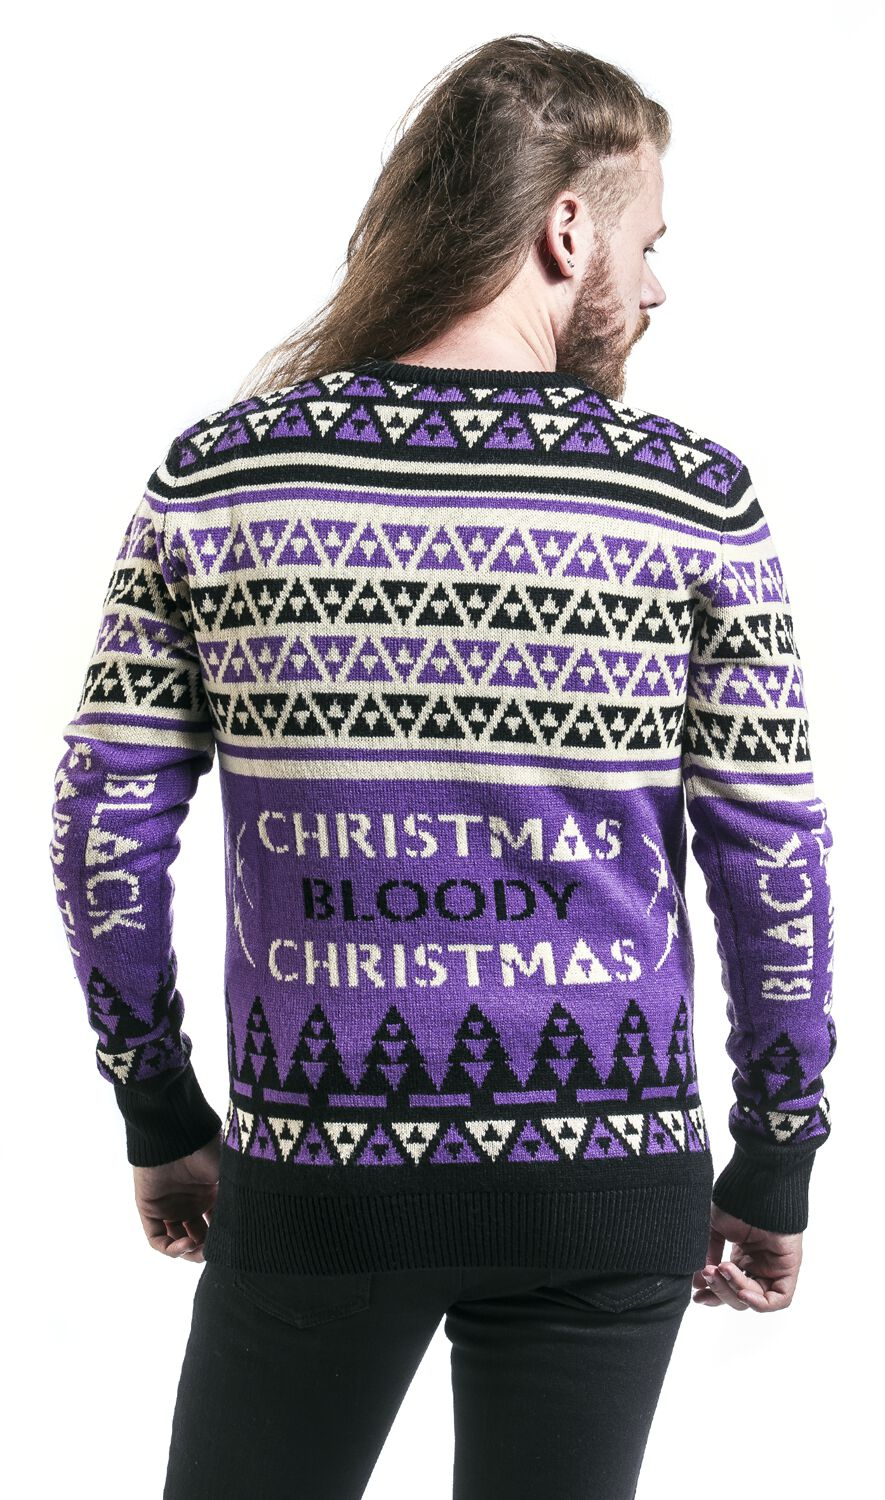 Holiday Sweater 2018 Black Sabbath Christmas Jumper Emp